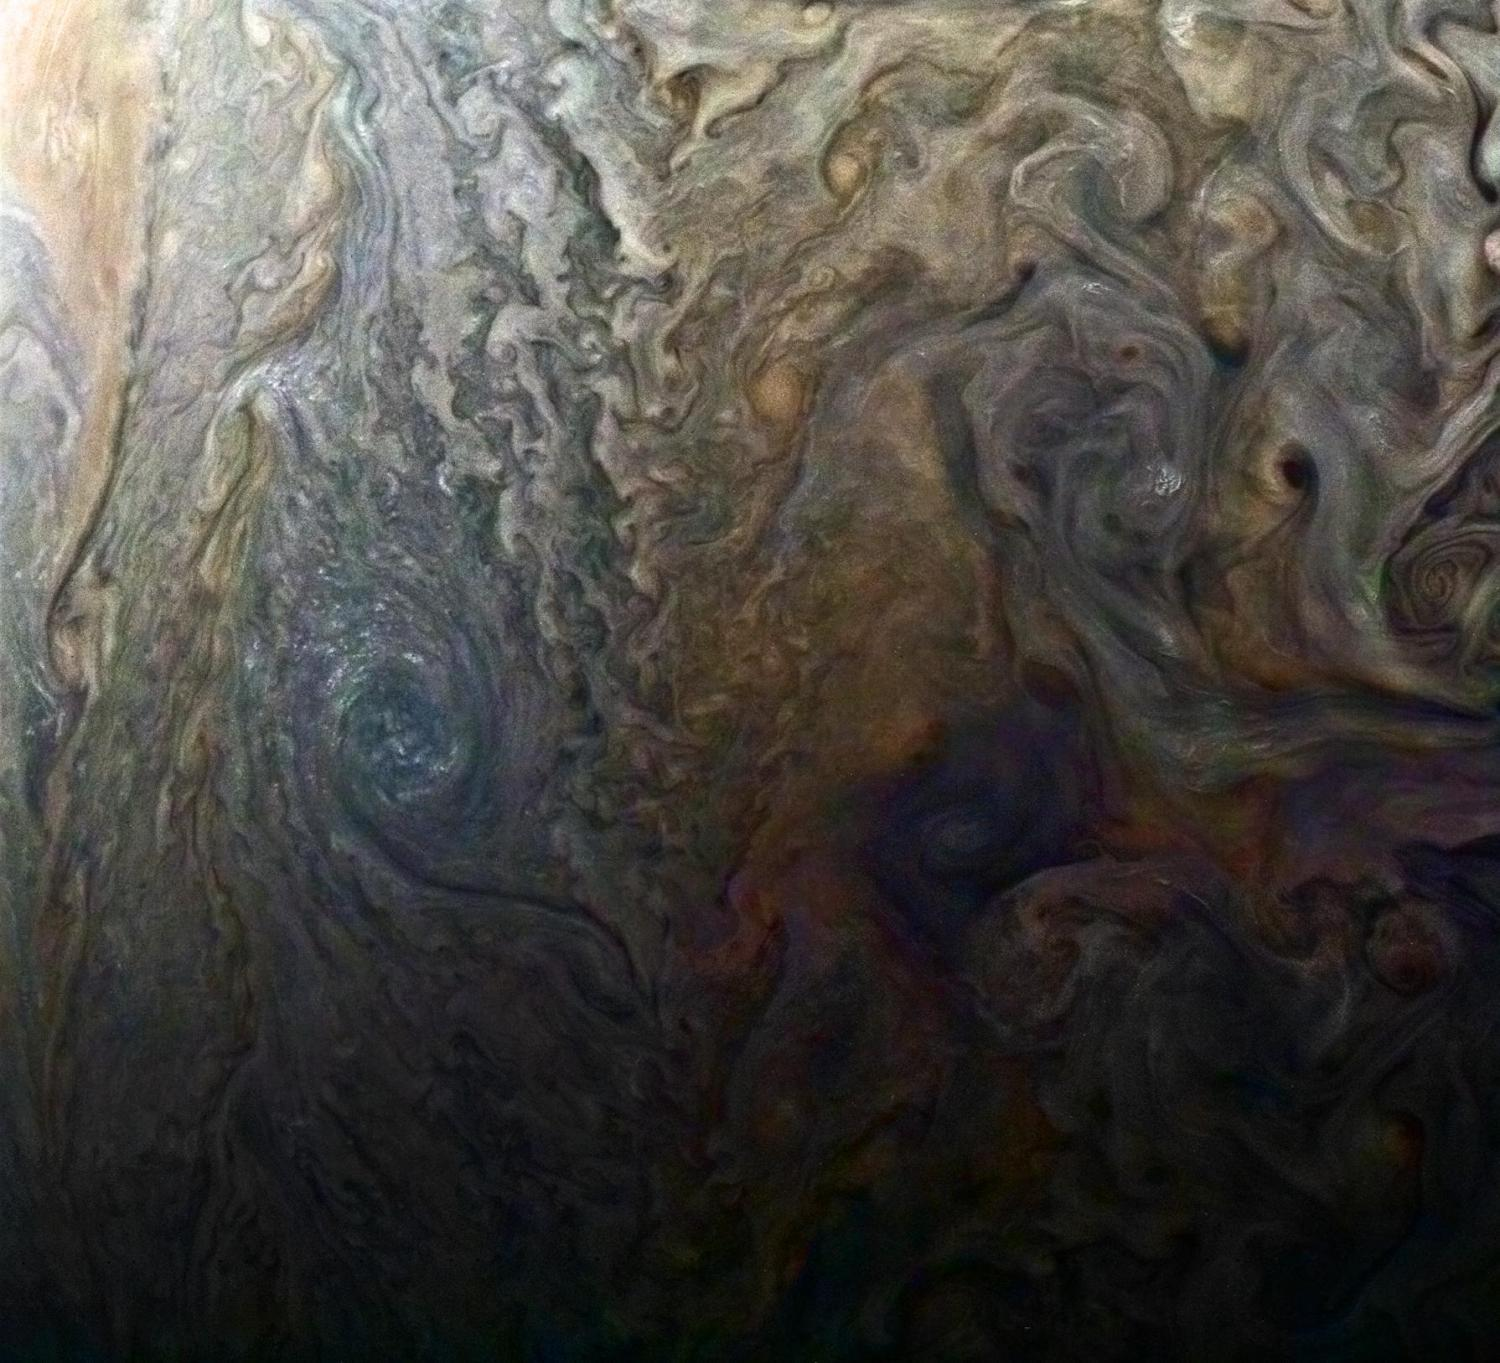 NASA's Juno spacecraft whizzes closely by Jupiter